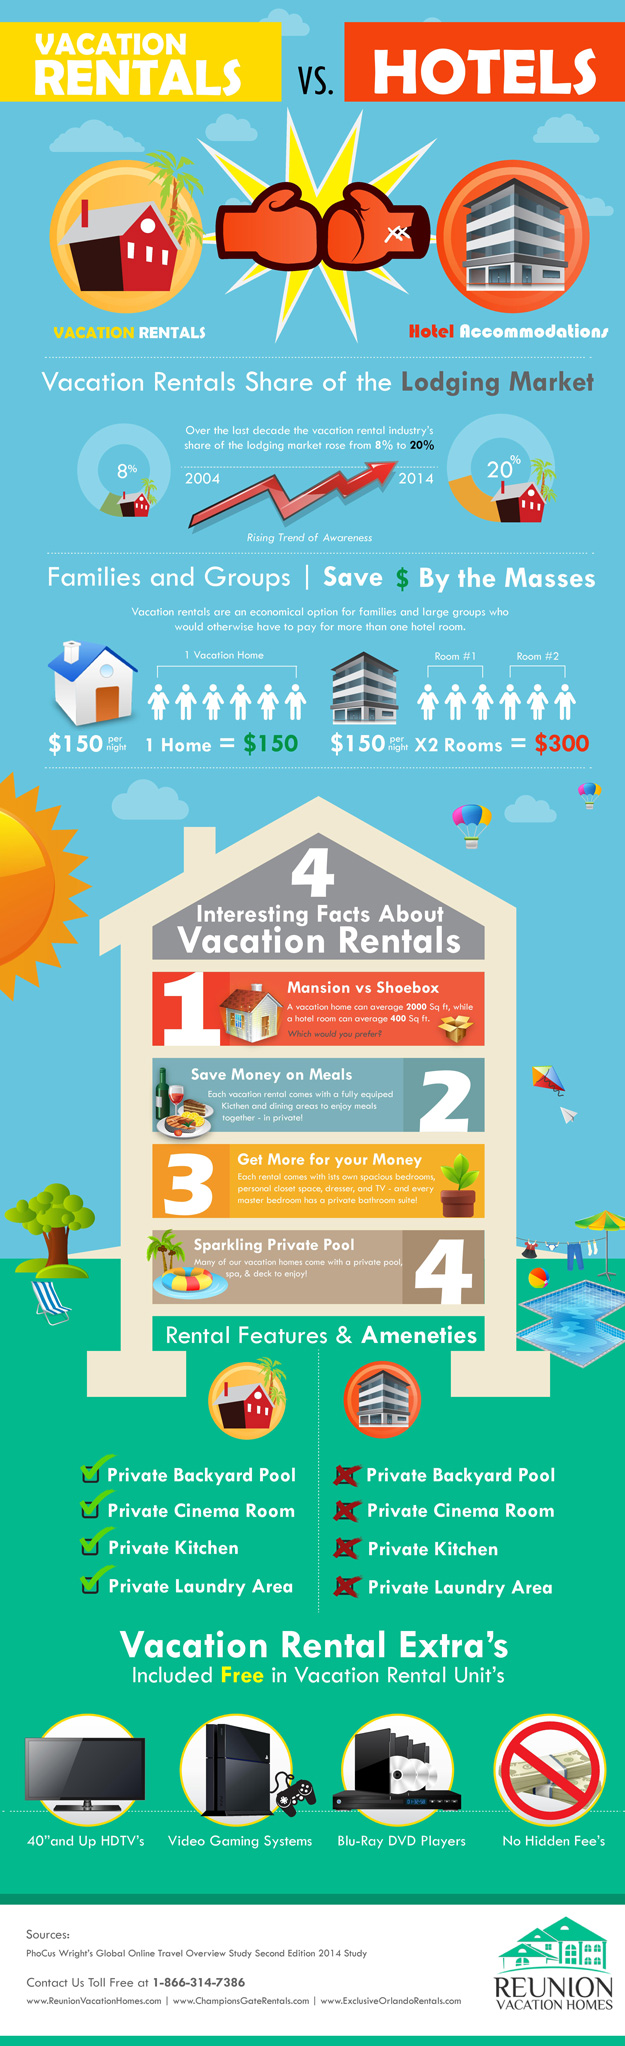 Why Vacation Home Rentals?